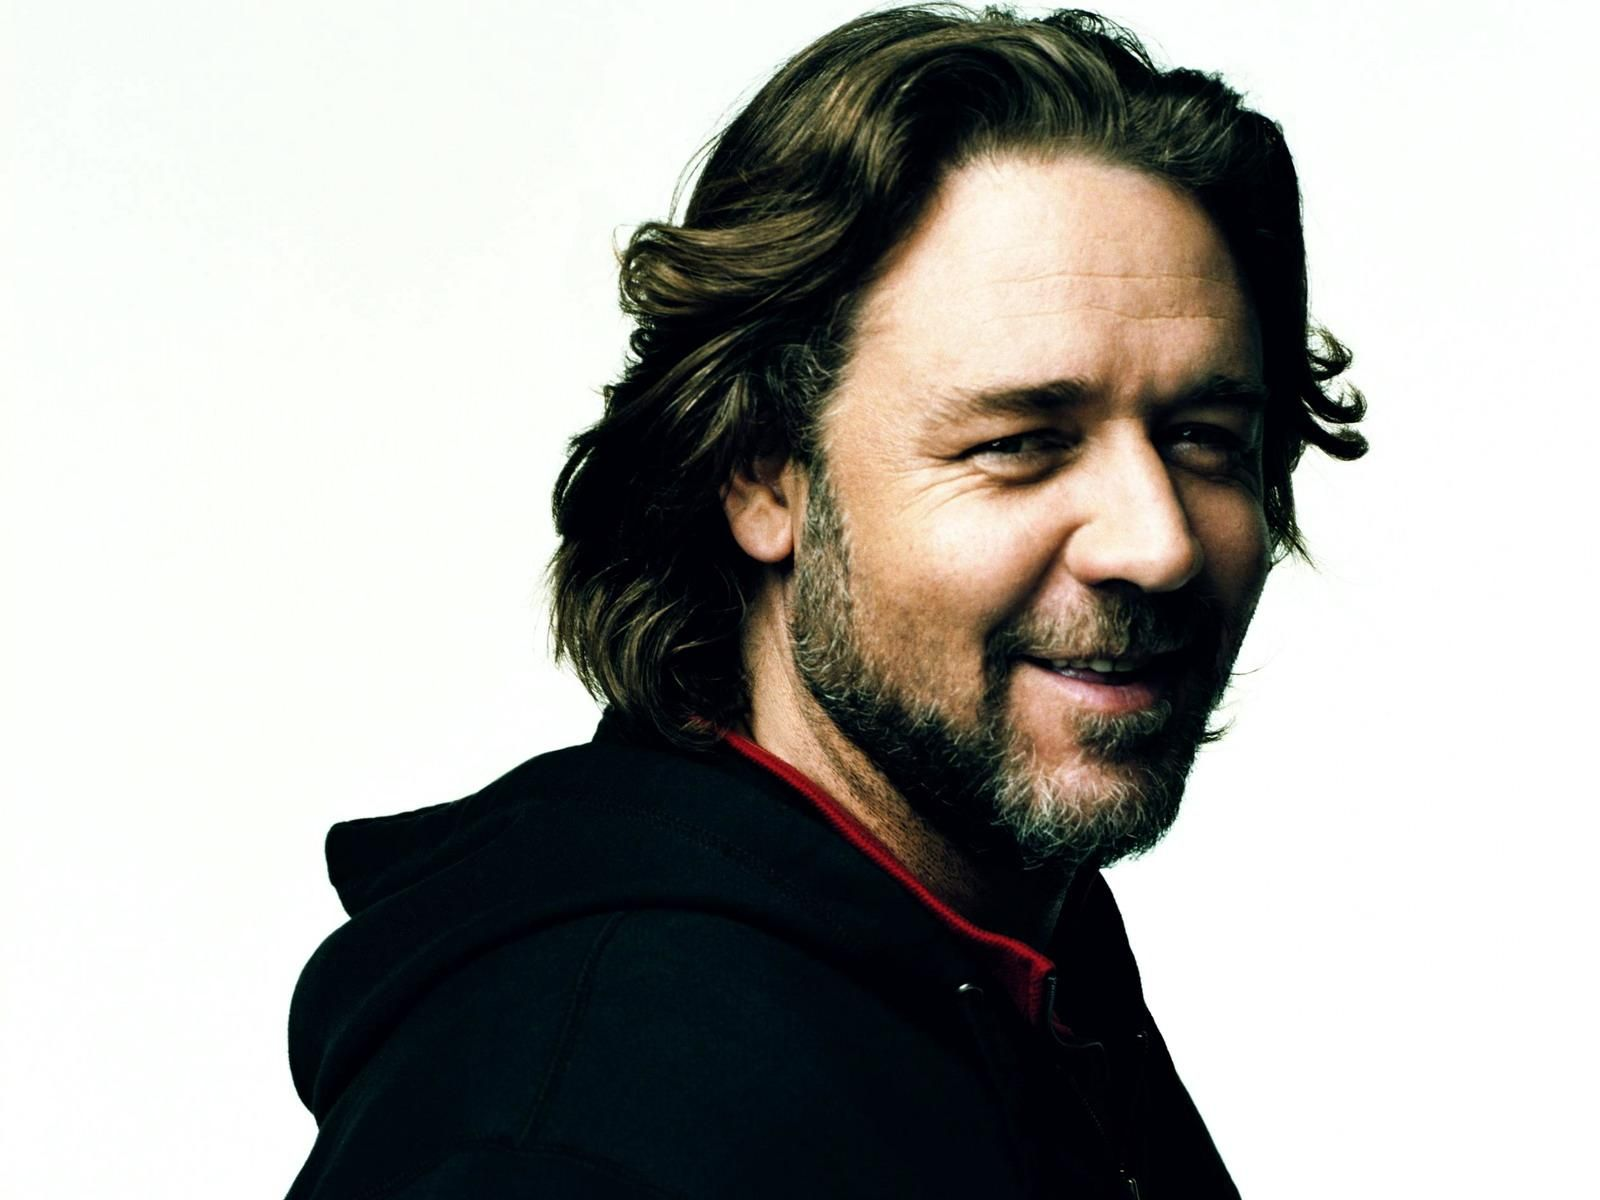 Russell Crowe Computer Wallpapers 52379 1600x1200 px ~ HDWallSource